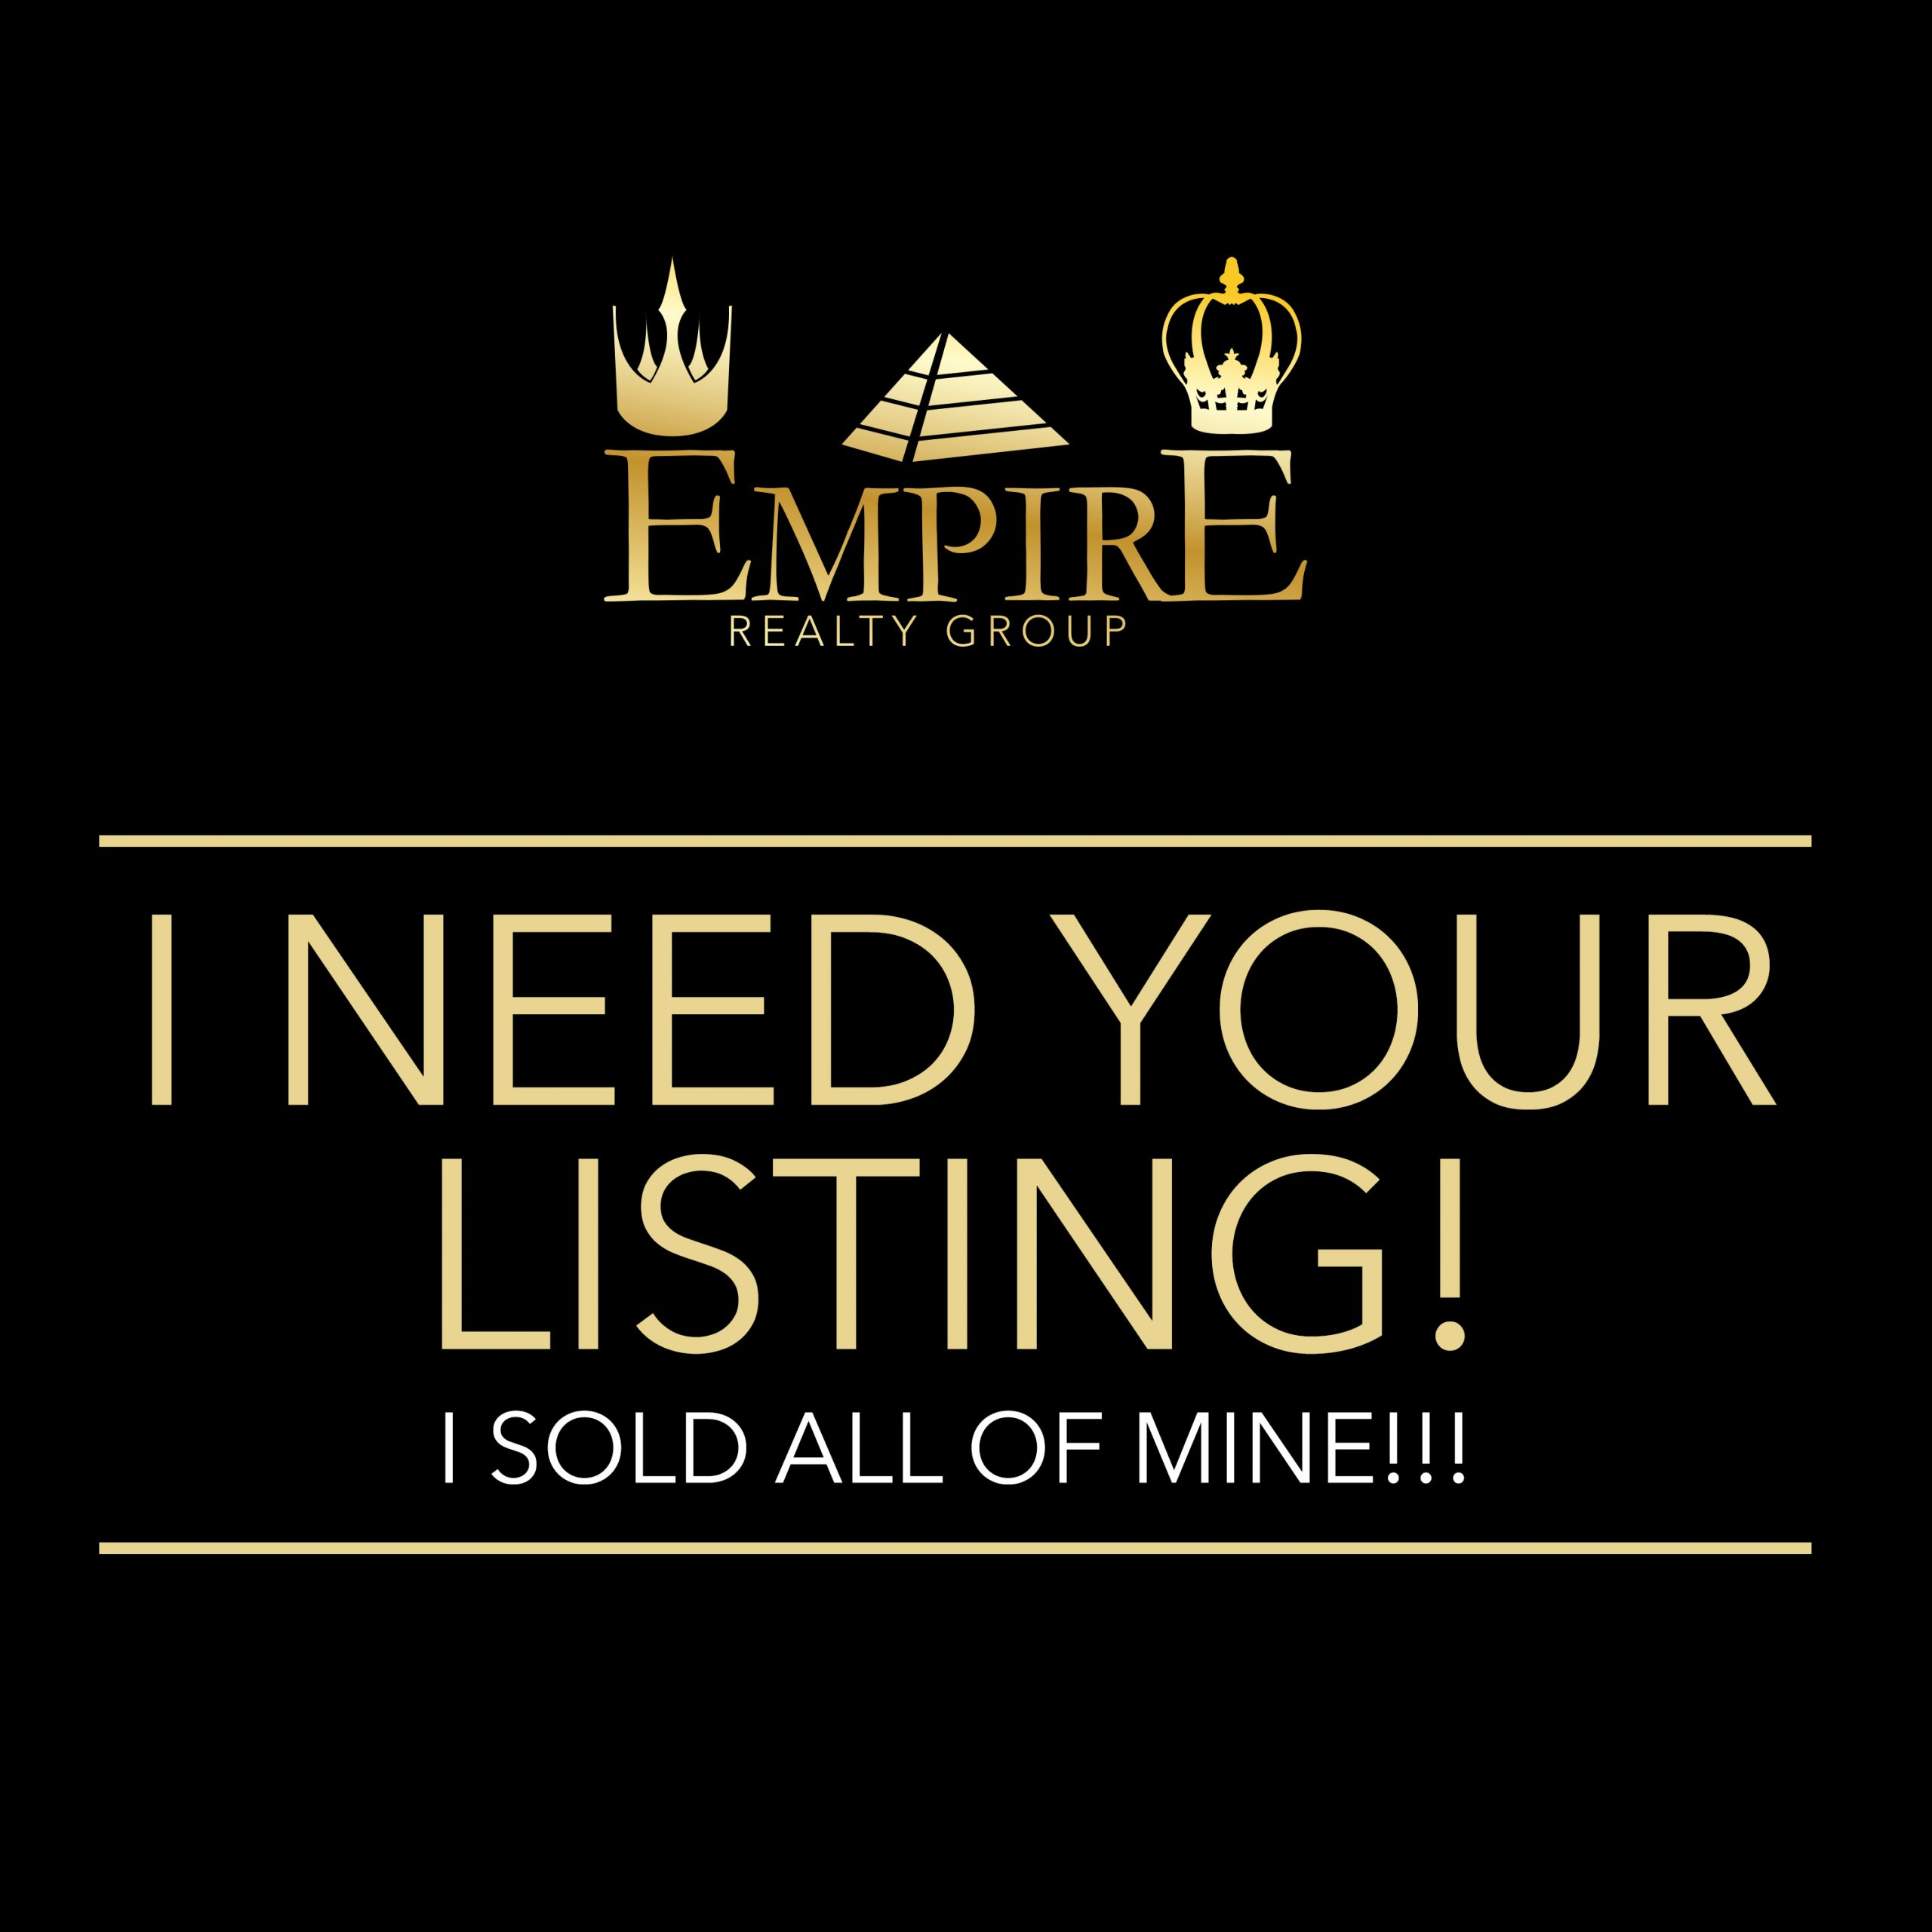 I Need Your Listing